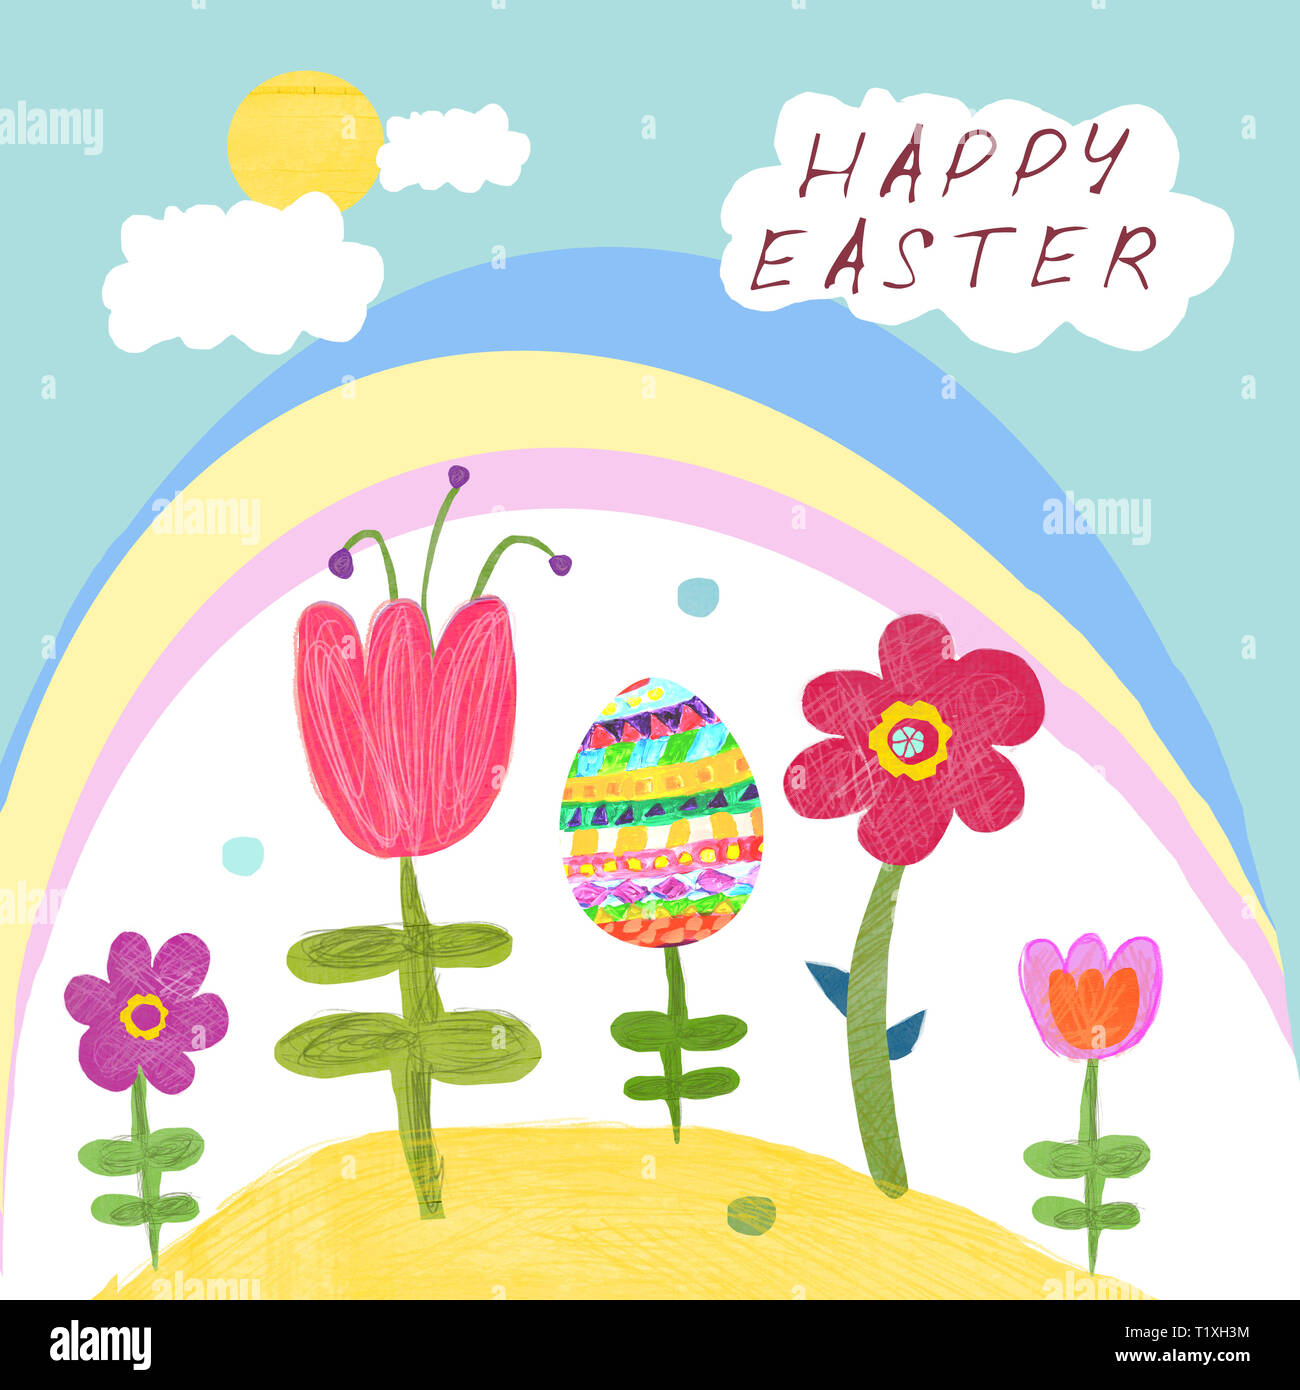 Illustration in the naive style Happy Easter.Flowers, easter egg, rainbow, clouds and sun on a greeting card. - Stock Image